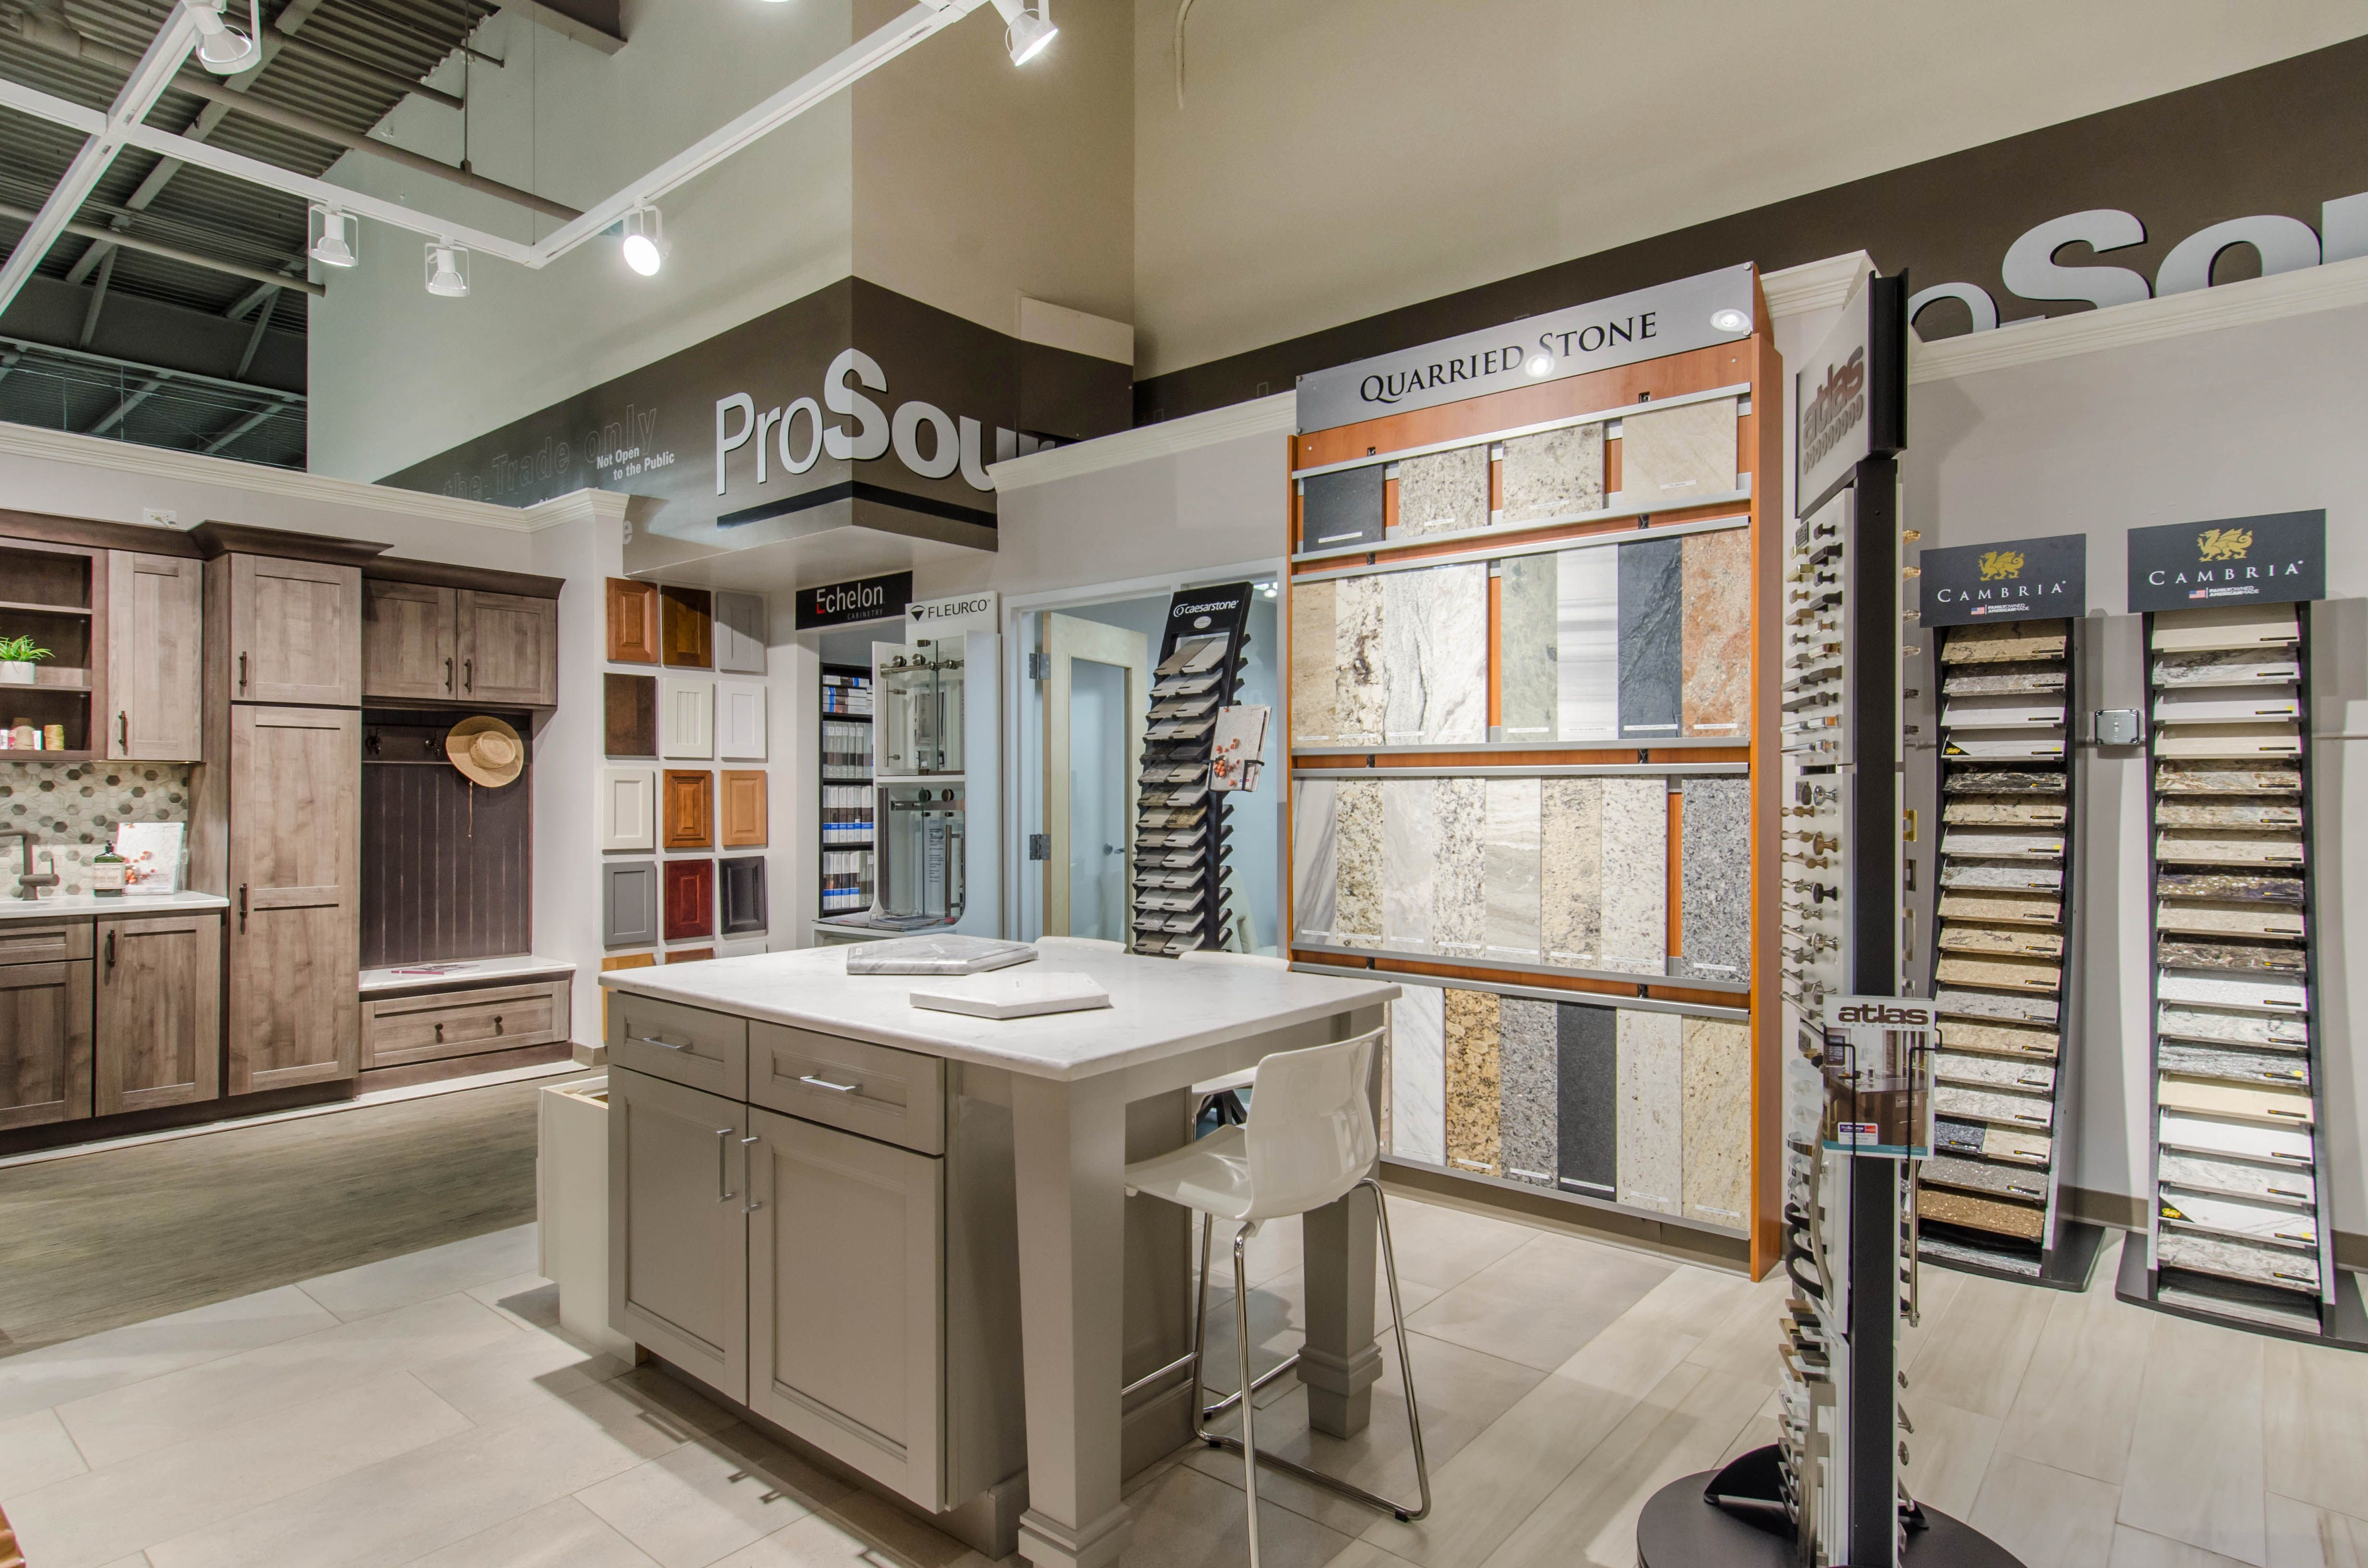 Don T Pay Retail Prices When You Can Buy Wholesale And Take Your Project Budget Further Learn More About Pros Home Remodeling Home Renovation Buying Wholesale